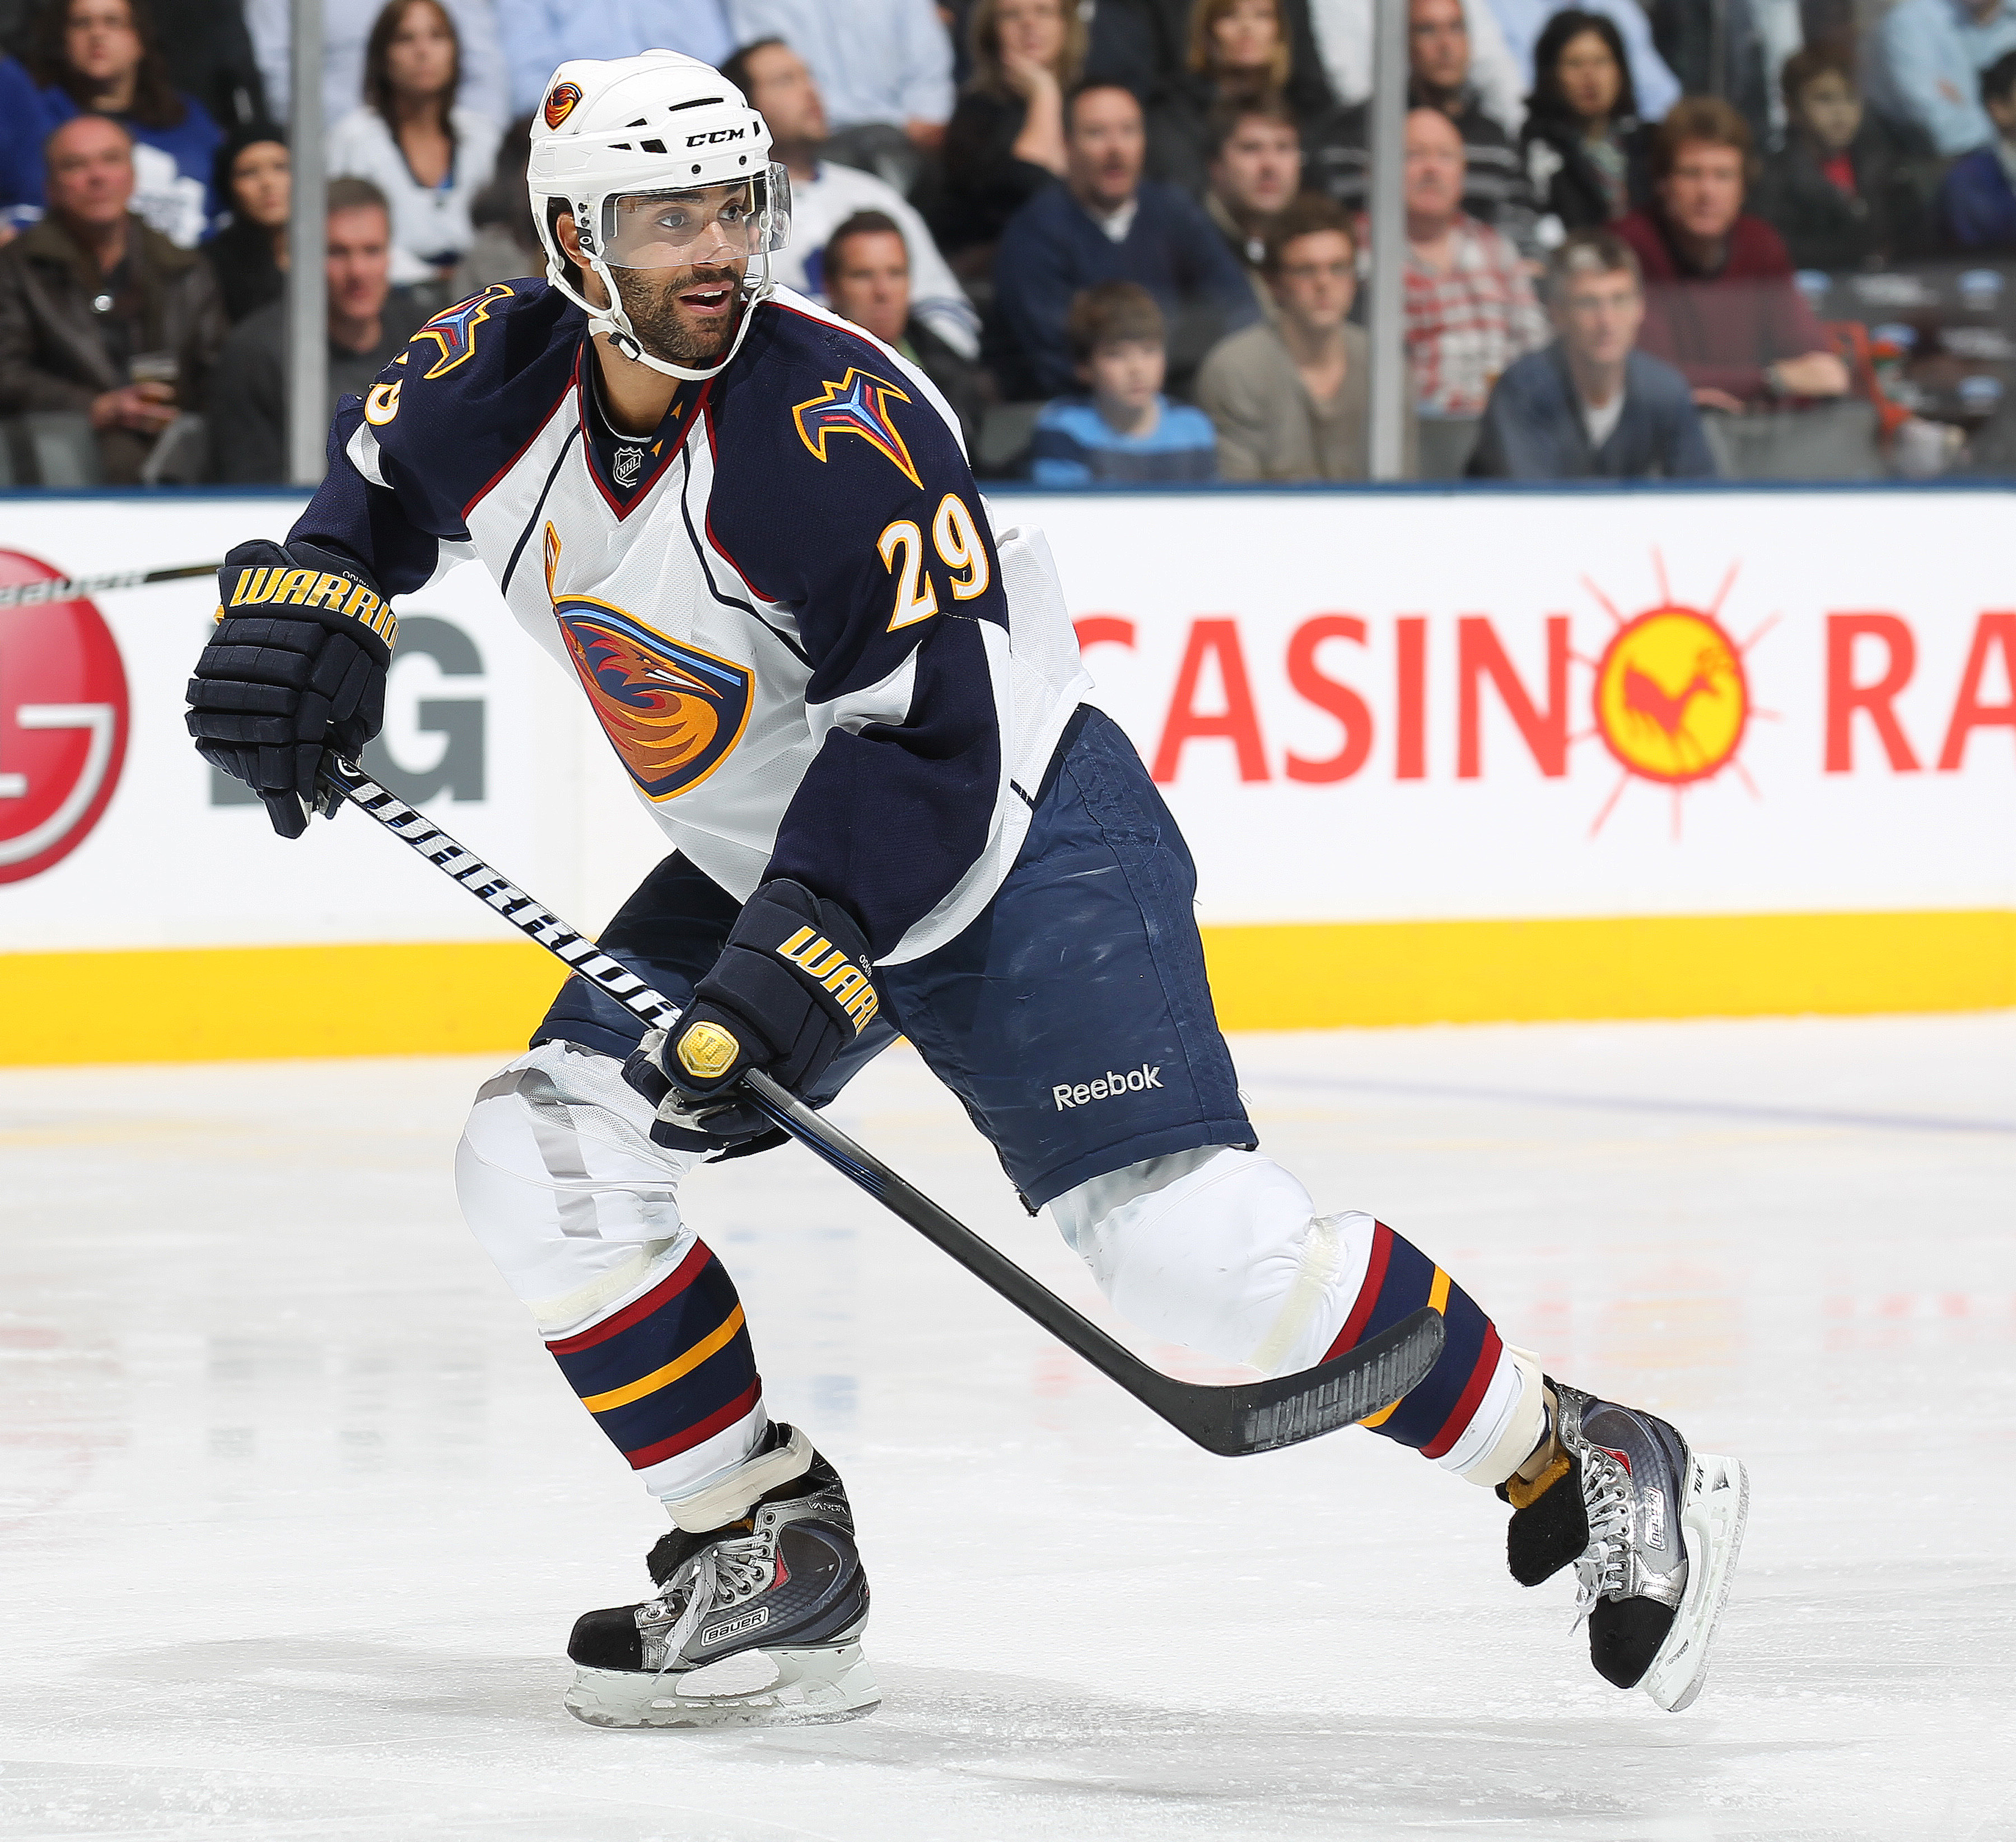 TORONTO, CAN - FEBRUARY 7:  Johnny Oduya #29 of the Atlanta Thrashers skates in a game against the Toronto Maple Leafs on February 7, 2011 at the Air Canada Centre in Toronto, Canada. The Leafs defeated the Thrashers 5-4. (Photo by Claus Andersen/Getty Im